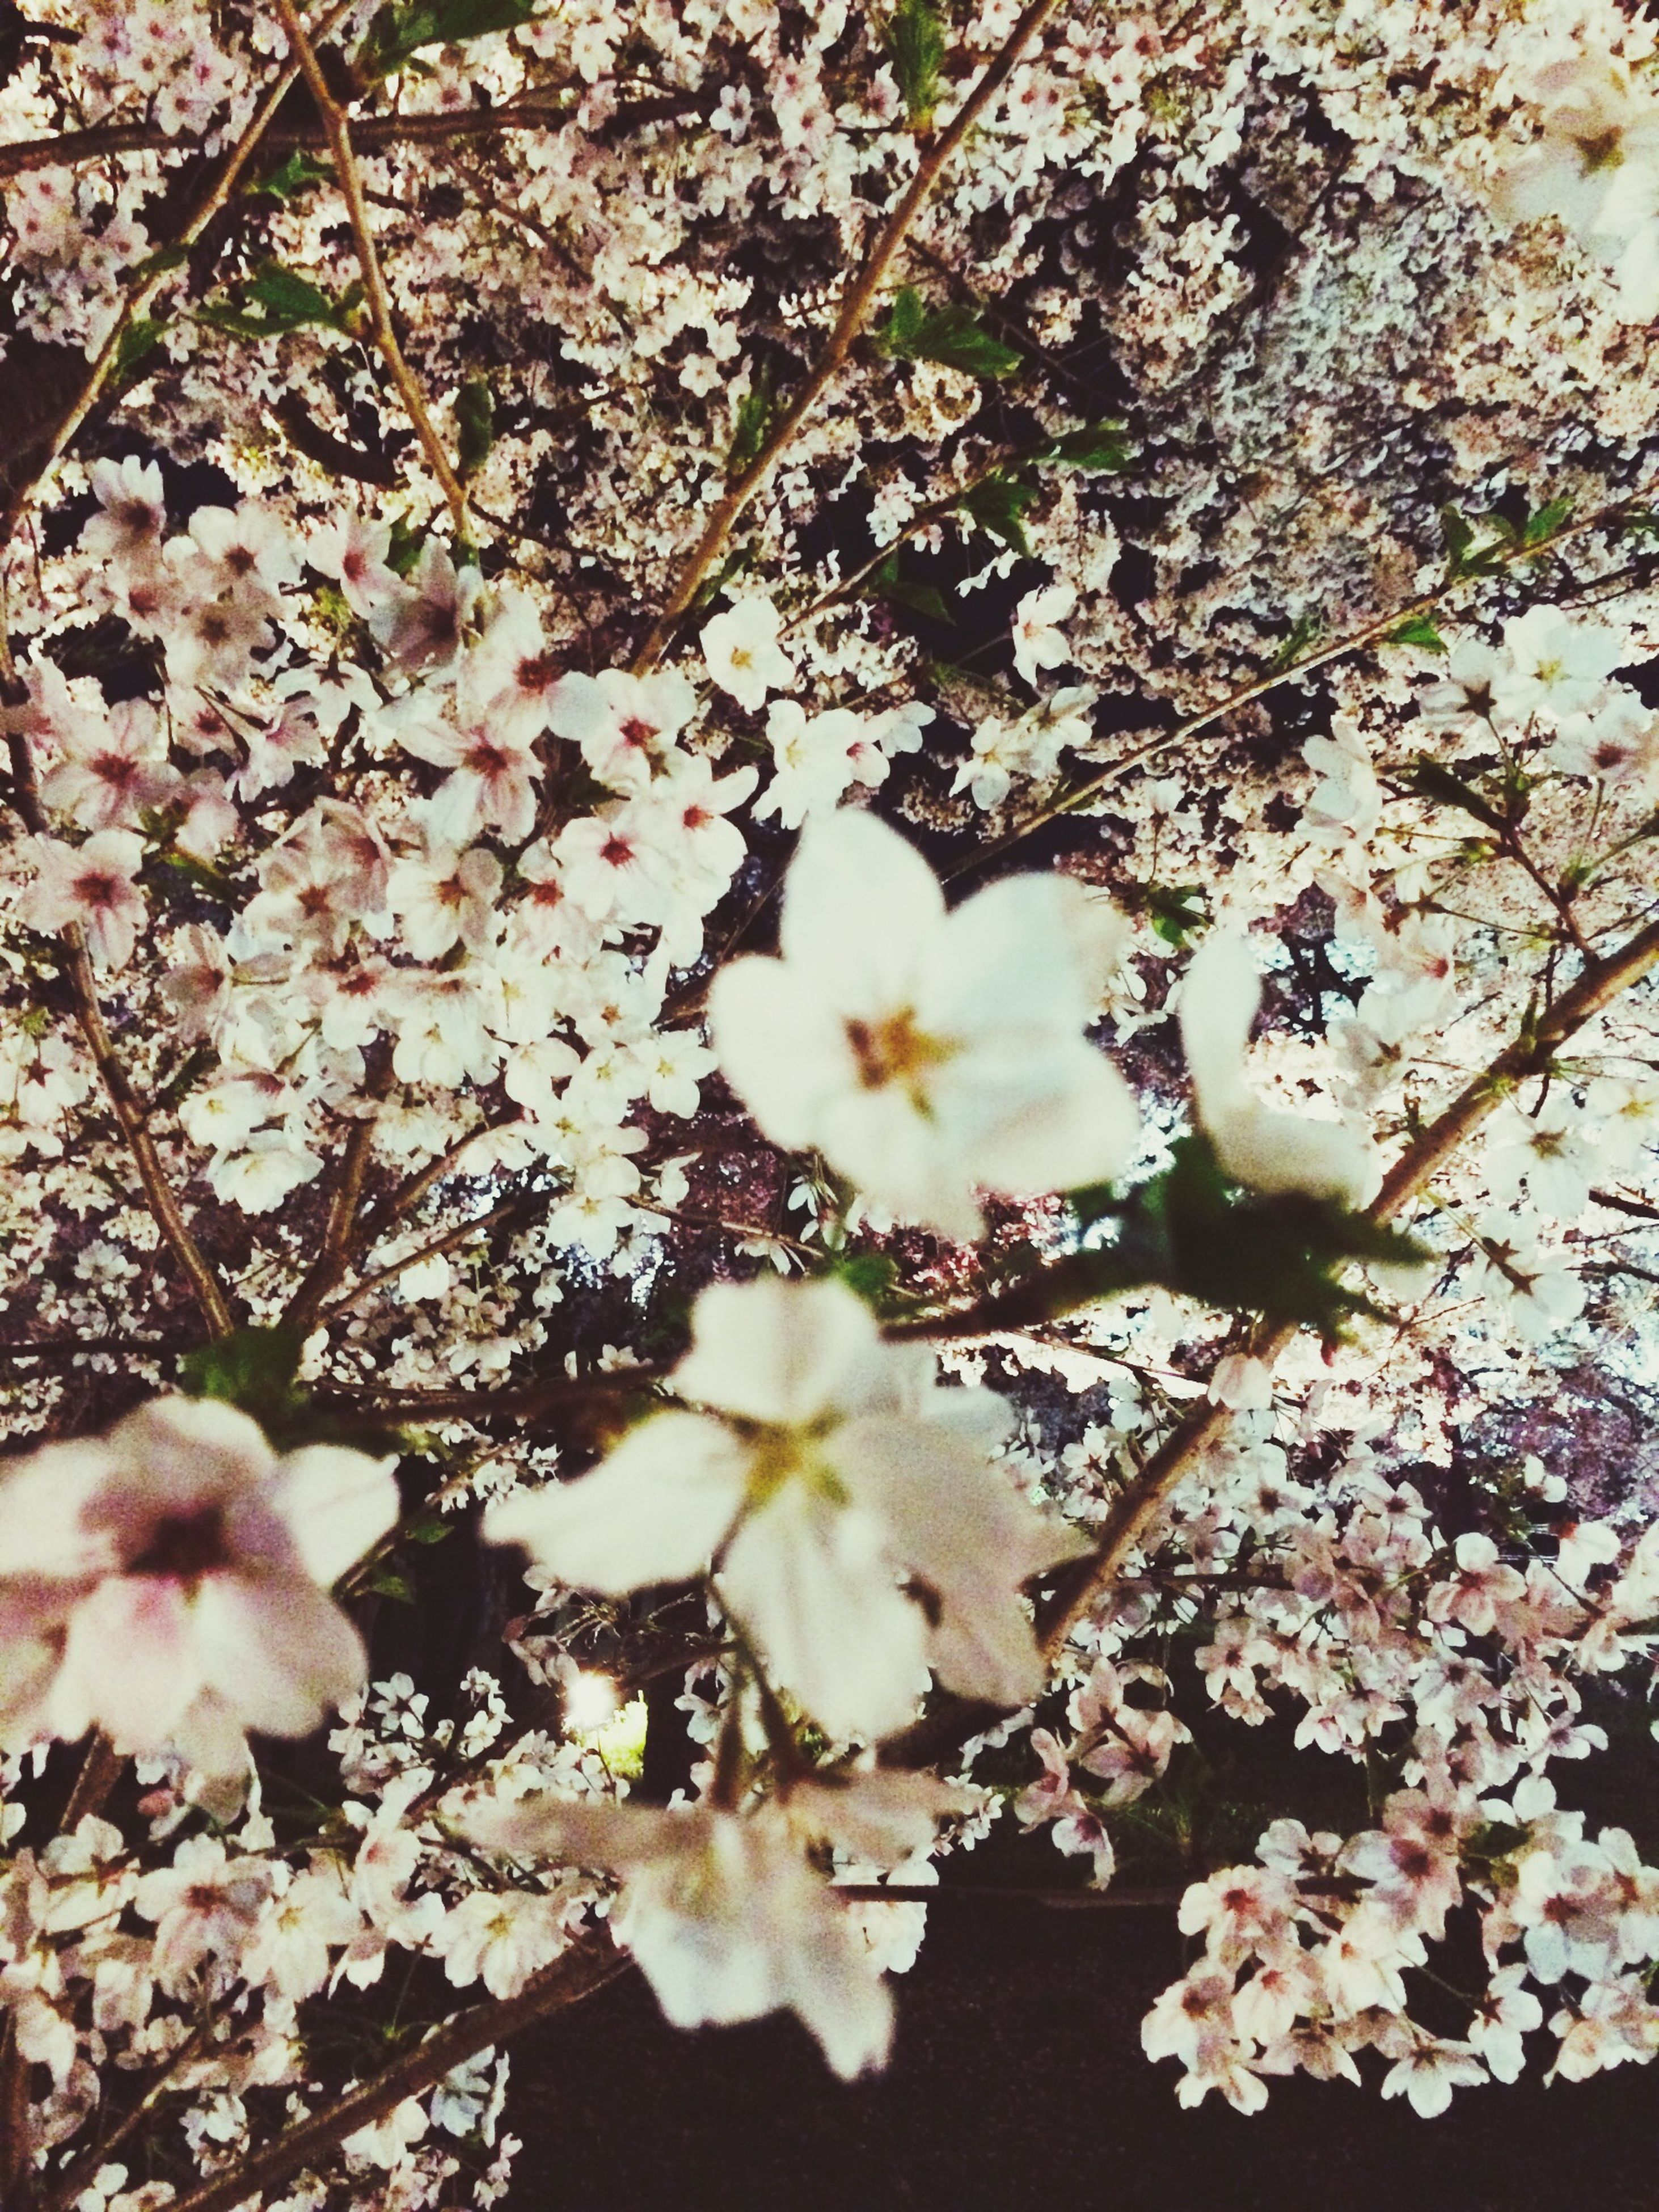 flower, freshness, growth, branch, fragility, blossom, beauty in nature, tree, petal, nature, cherry blossom, white color, in bloom, blooming, springtime, cherry tree, twig, pink color, flower head, botany